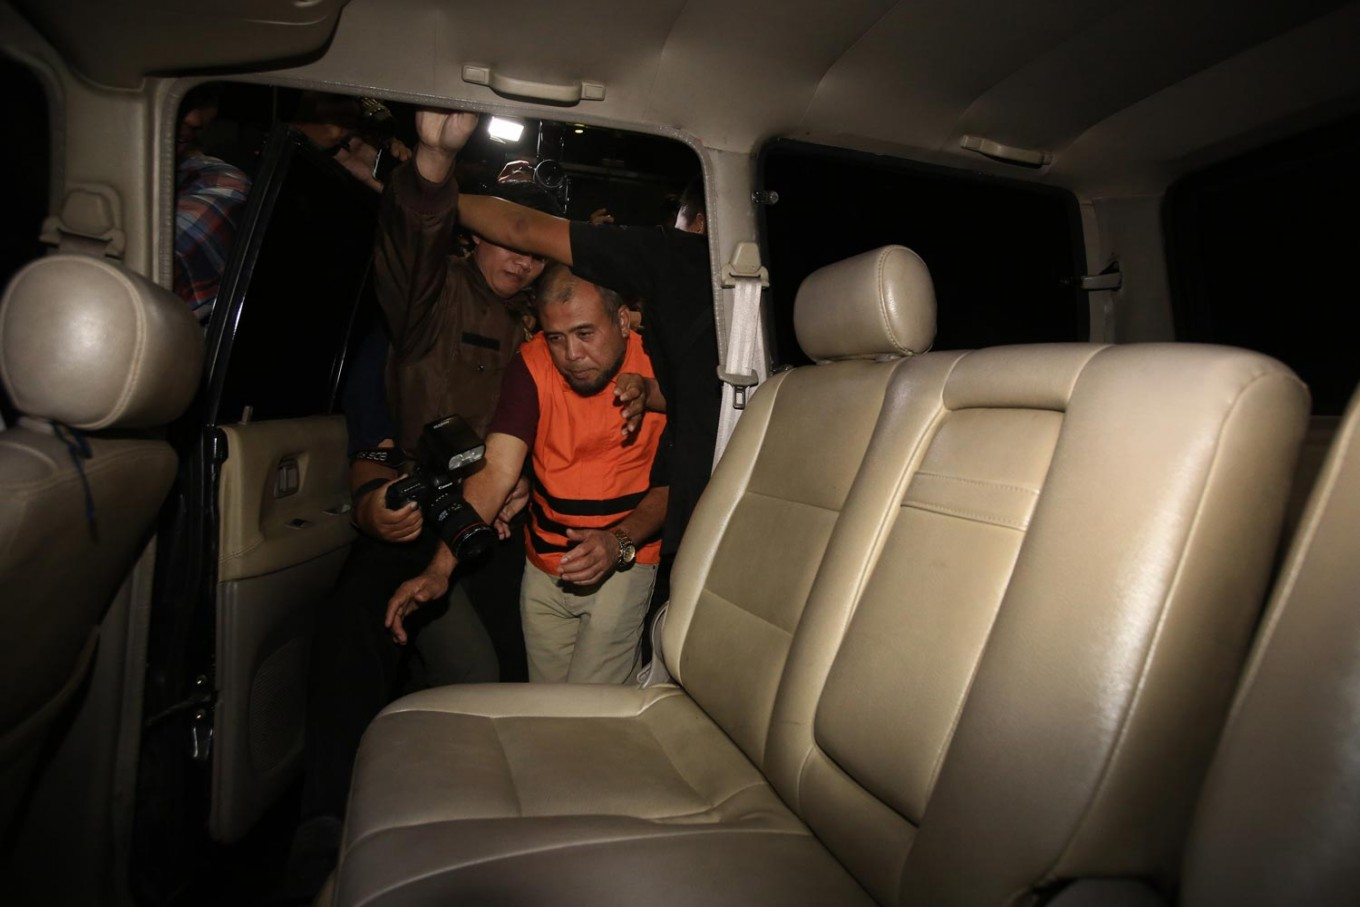 Constitutional Court justice and bribery suspect Patrialis Akbar gets into a car after being questioned by the Corruption Eradication Commission (KPK) on Jan. 27. Patrialis and three other suspects - Kamaludin and businessman Basuki Hariman and Ng Fenny - have been detained for their alleged roles in a bribery case. JP/ Dhoni Setiawan